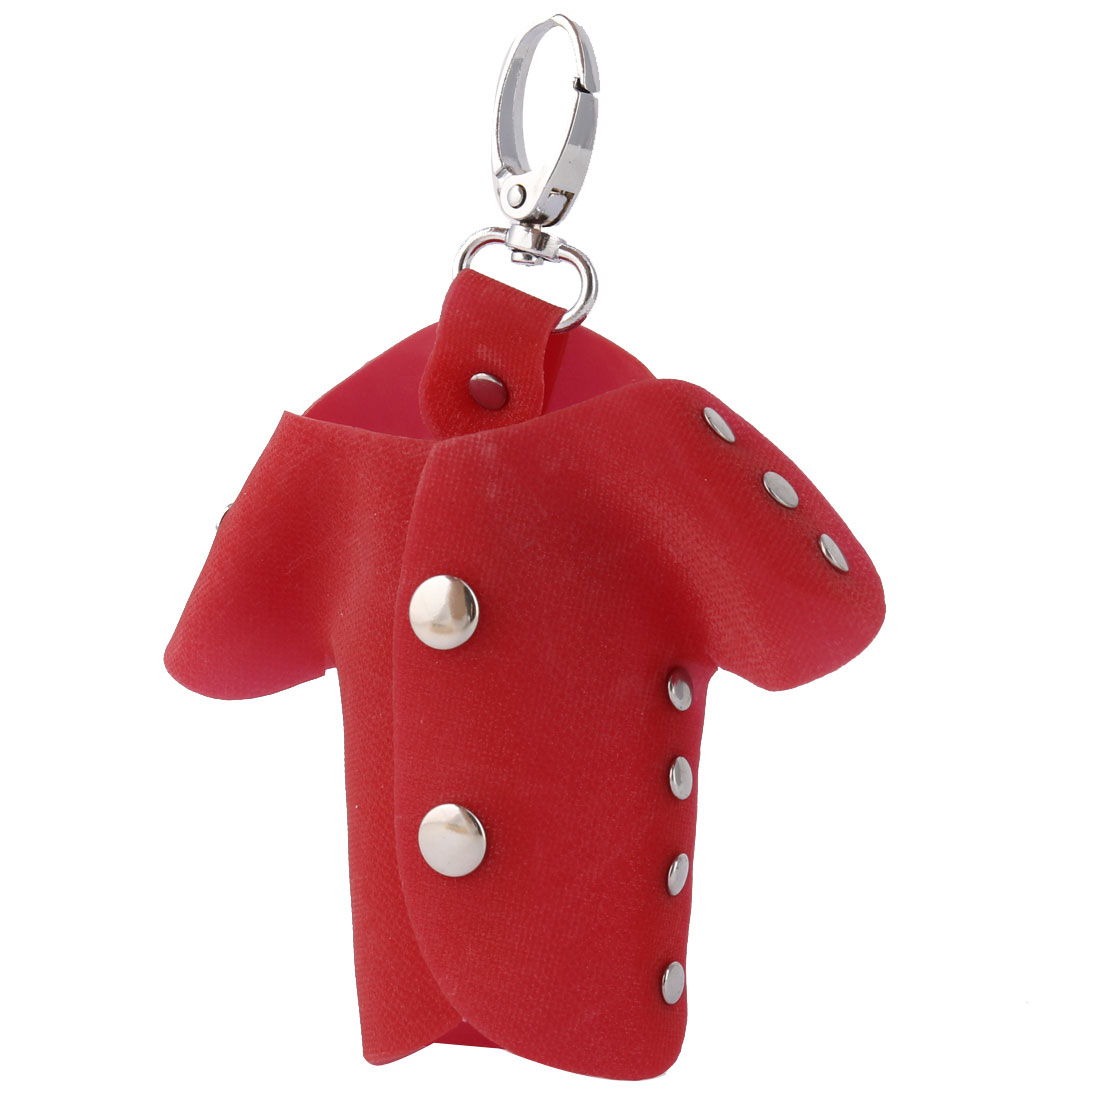 Plastic Cover Clothes Shape Portable Keys Holder Bag Case Silver Tone Red